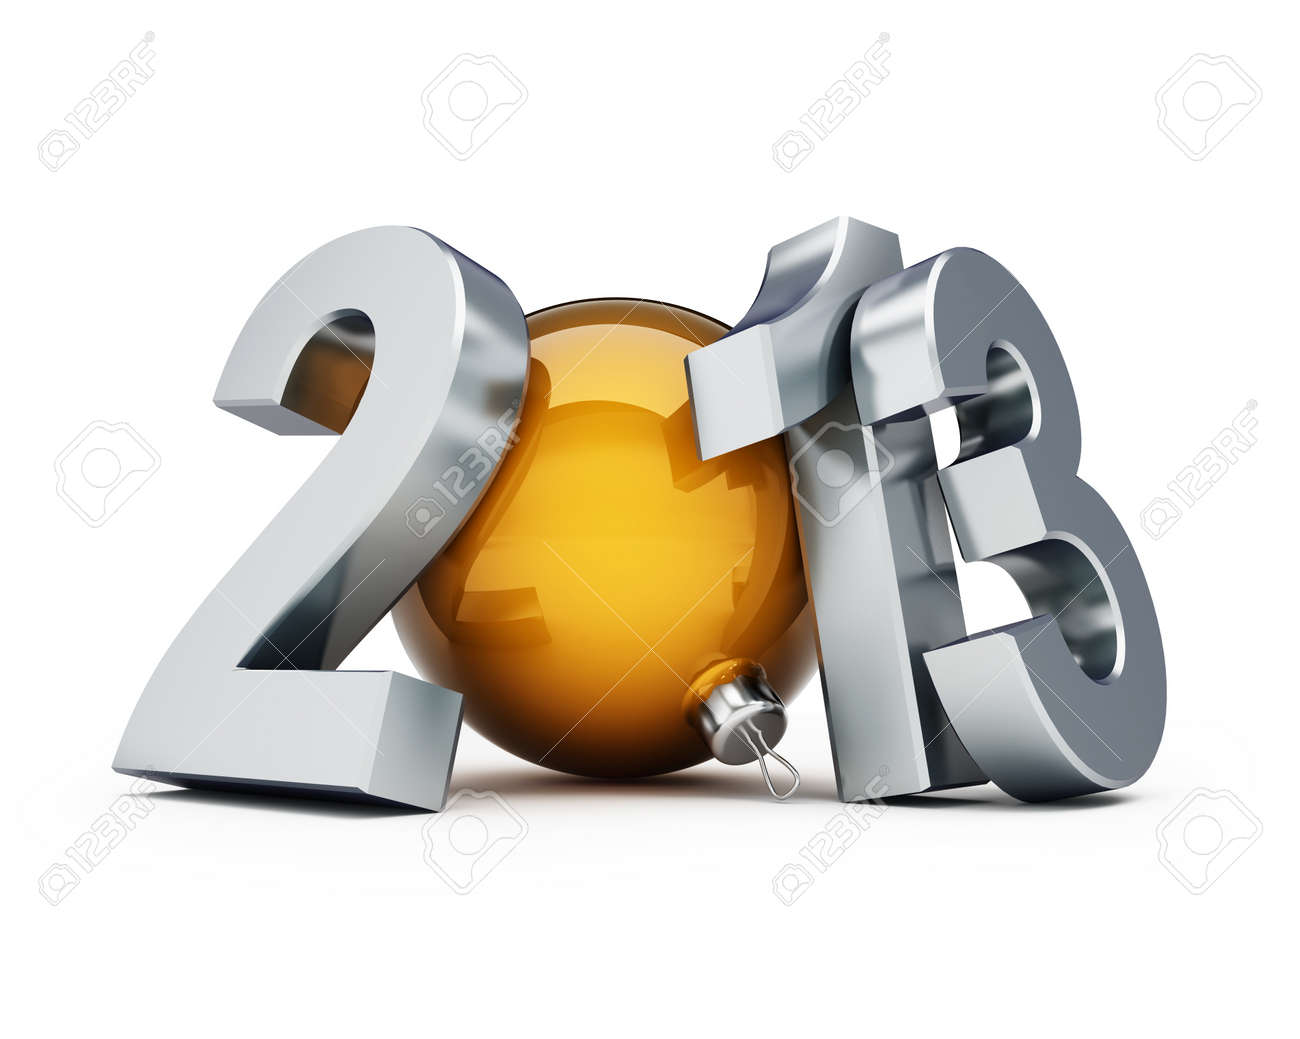 happy new year 2013 on a white background Stock Photo - 13871238